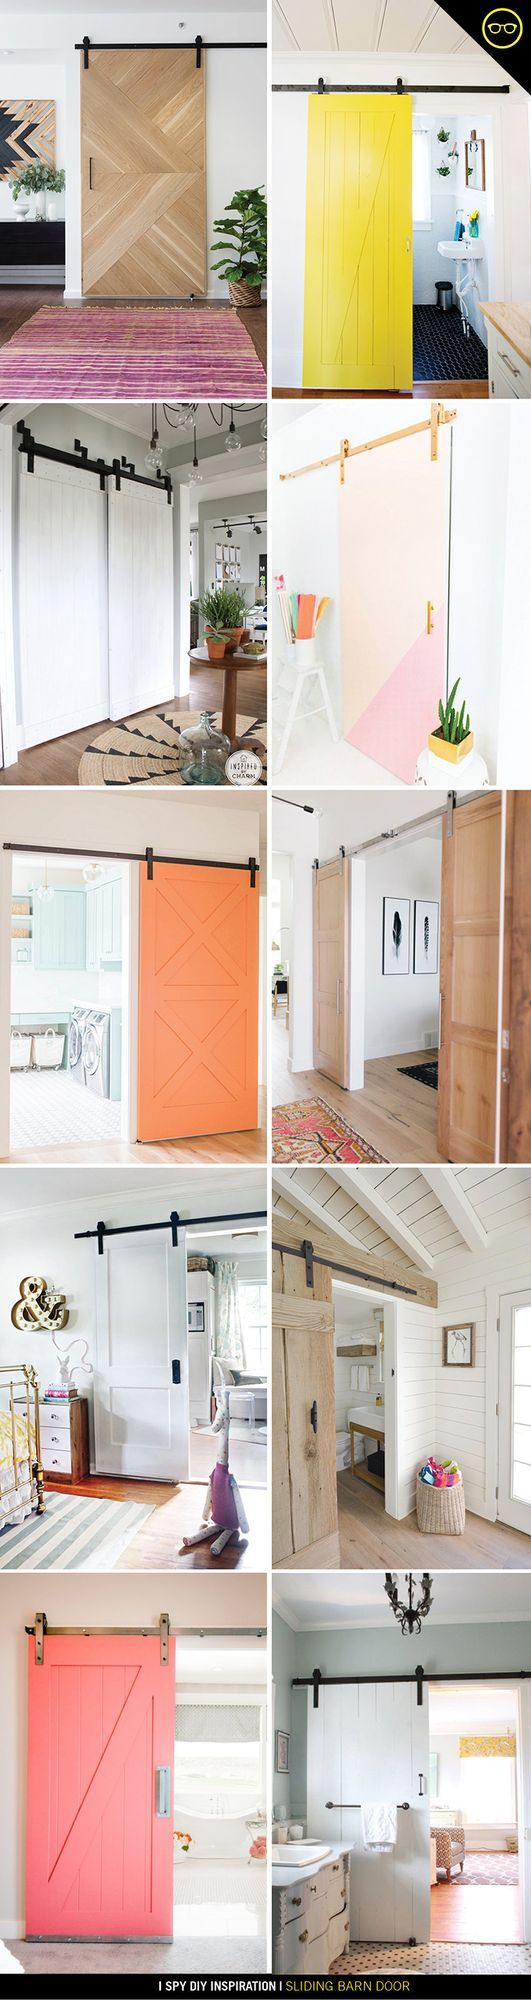 I love the look of a siding door, it's such a stylish and sleek way to divide spaces, without closing them off. I have a storage closet in the studio that needed some oversized doors to hide all the s